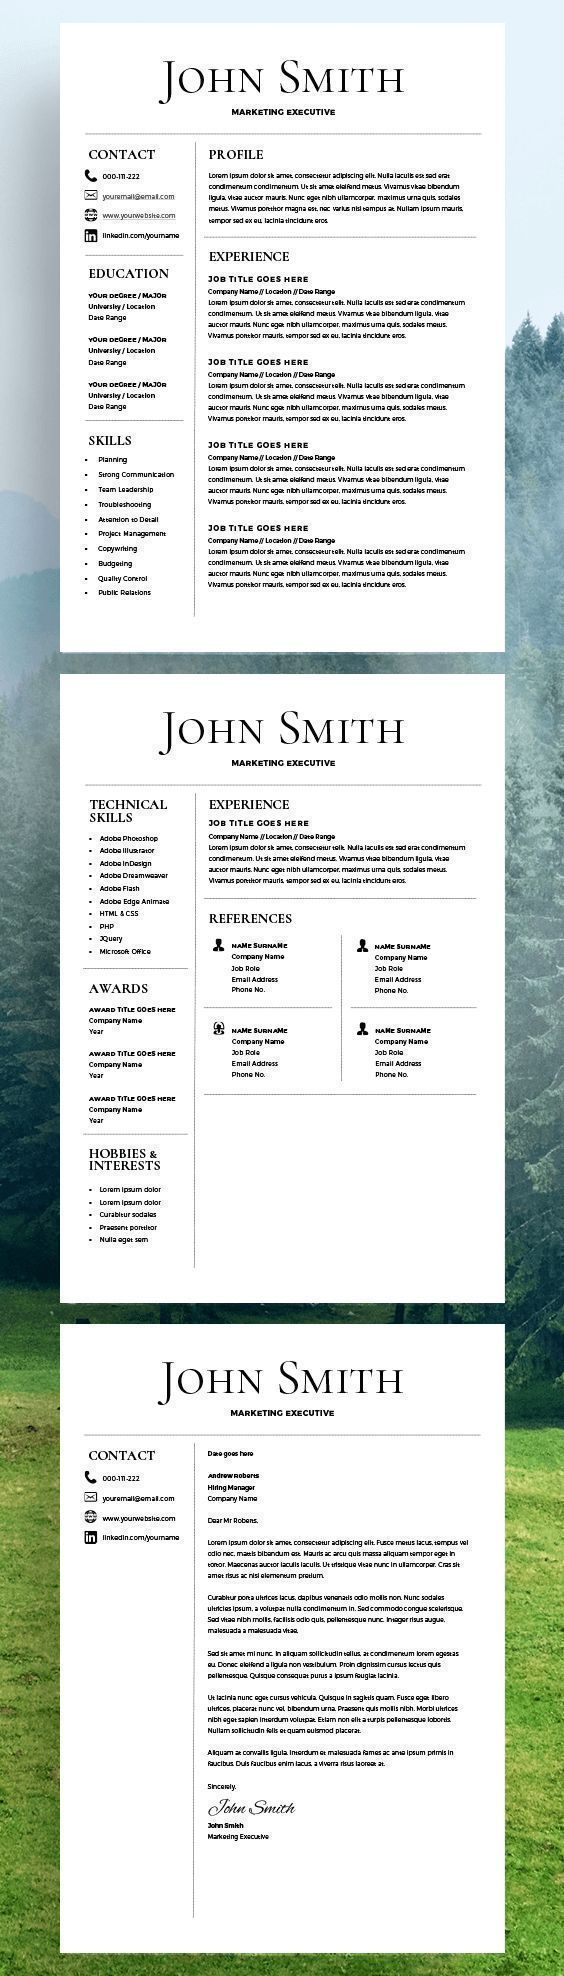 9 best Resume Templates images on Pinterest | Resume cover letters ...